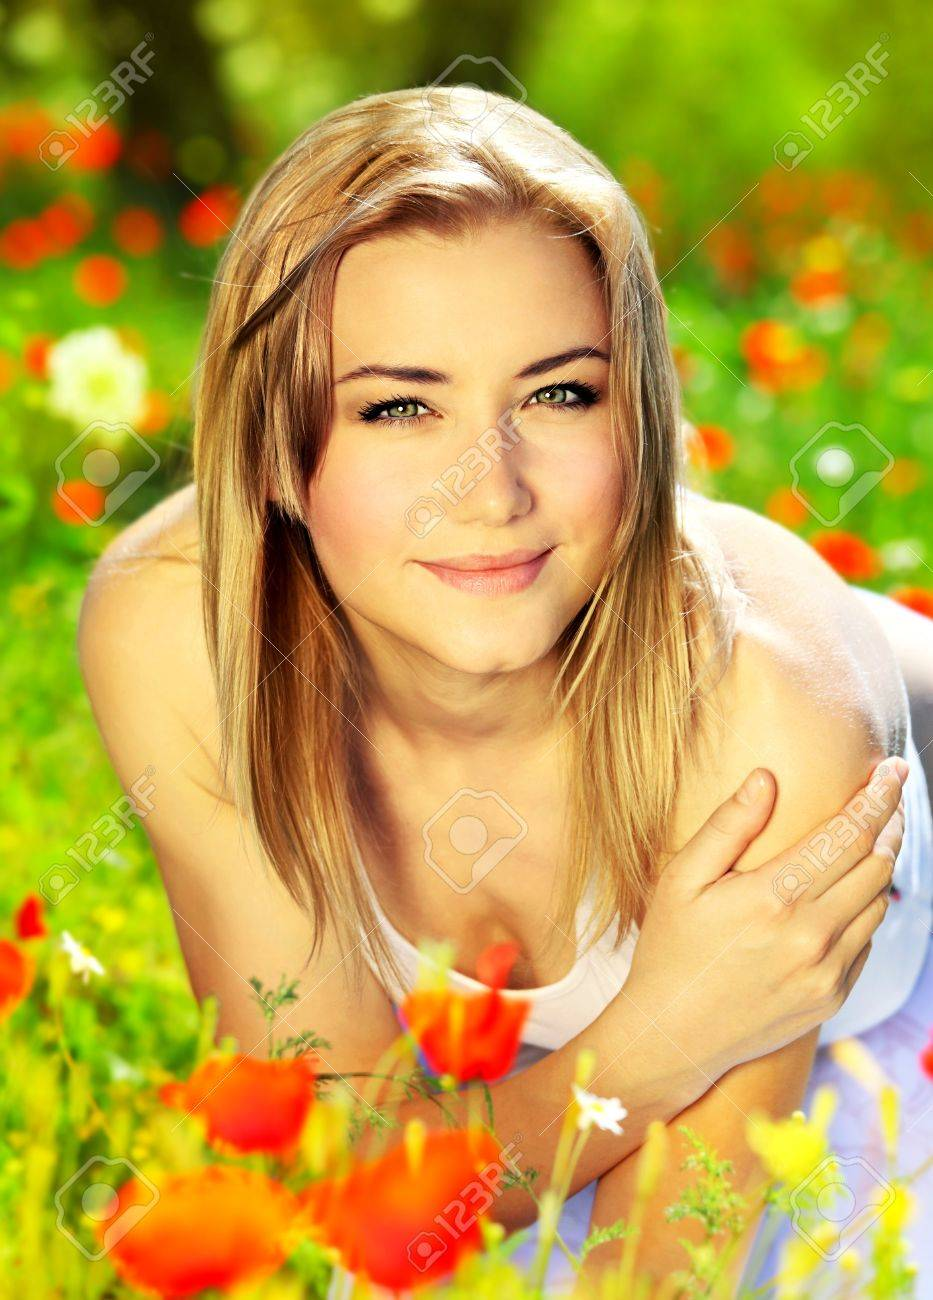 Young beautiful girl enjoying on the poppy flowers field, outdoor portrait, summer fun concept Stock Photo - 9824589